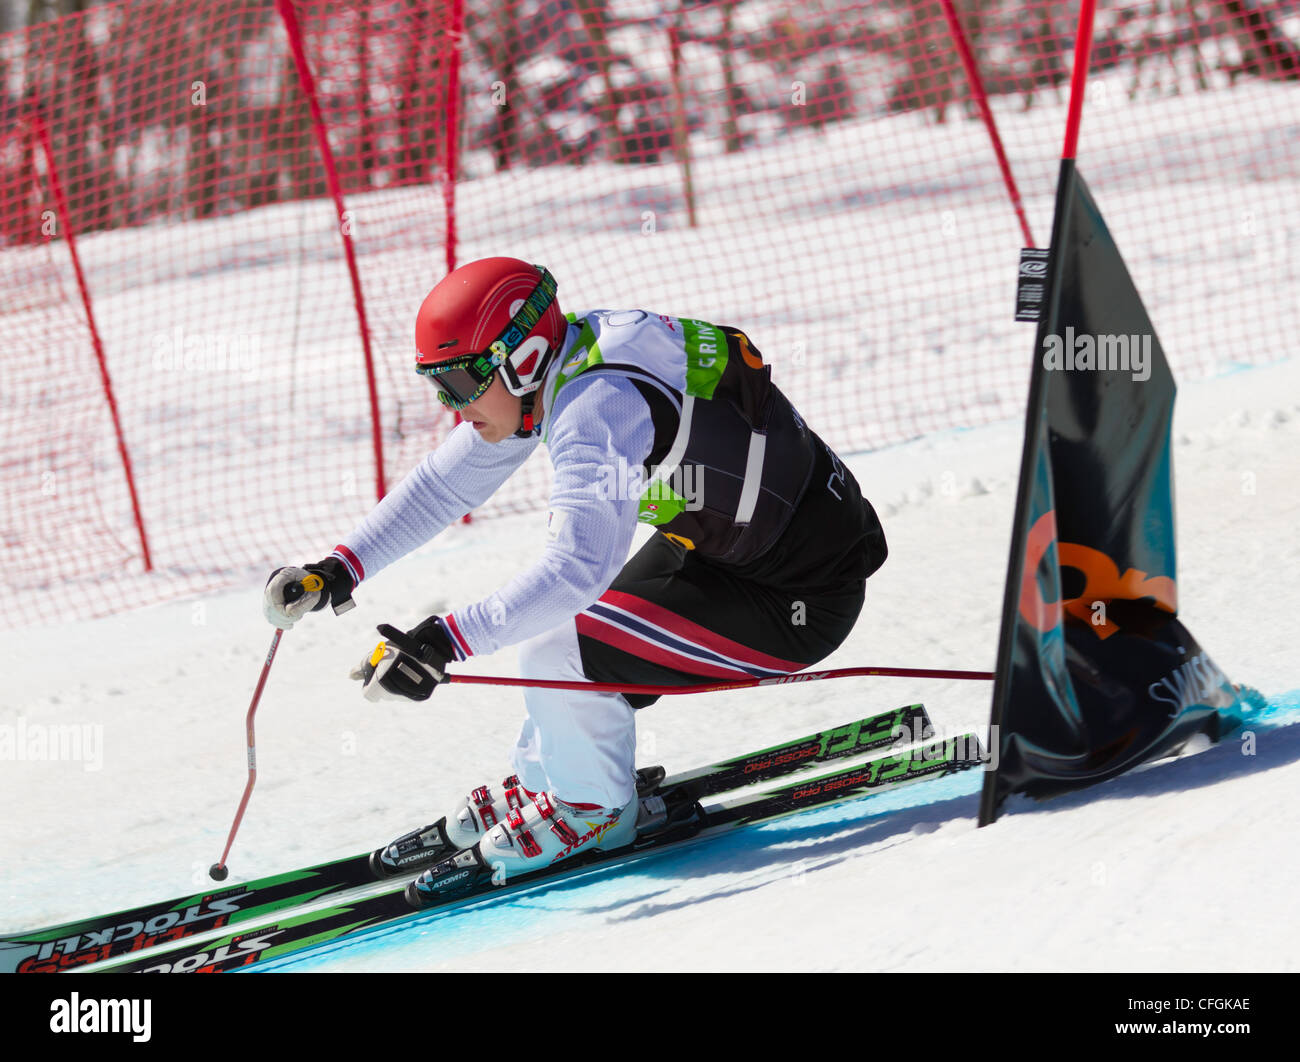 Athletes fight for lead position at FIS Skicross Worldcup March 10, 2012 in Grindelwald, Switzerland. Racer Nick Stock Photo